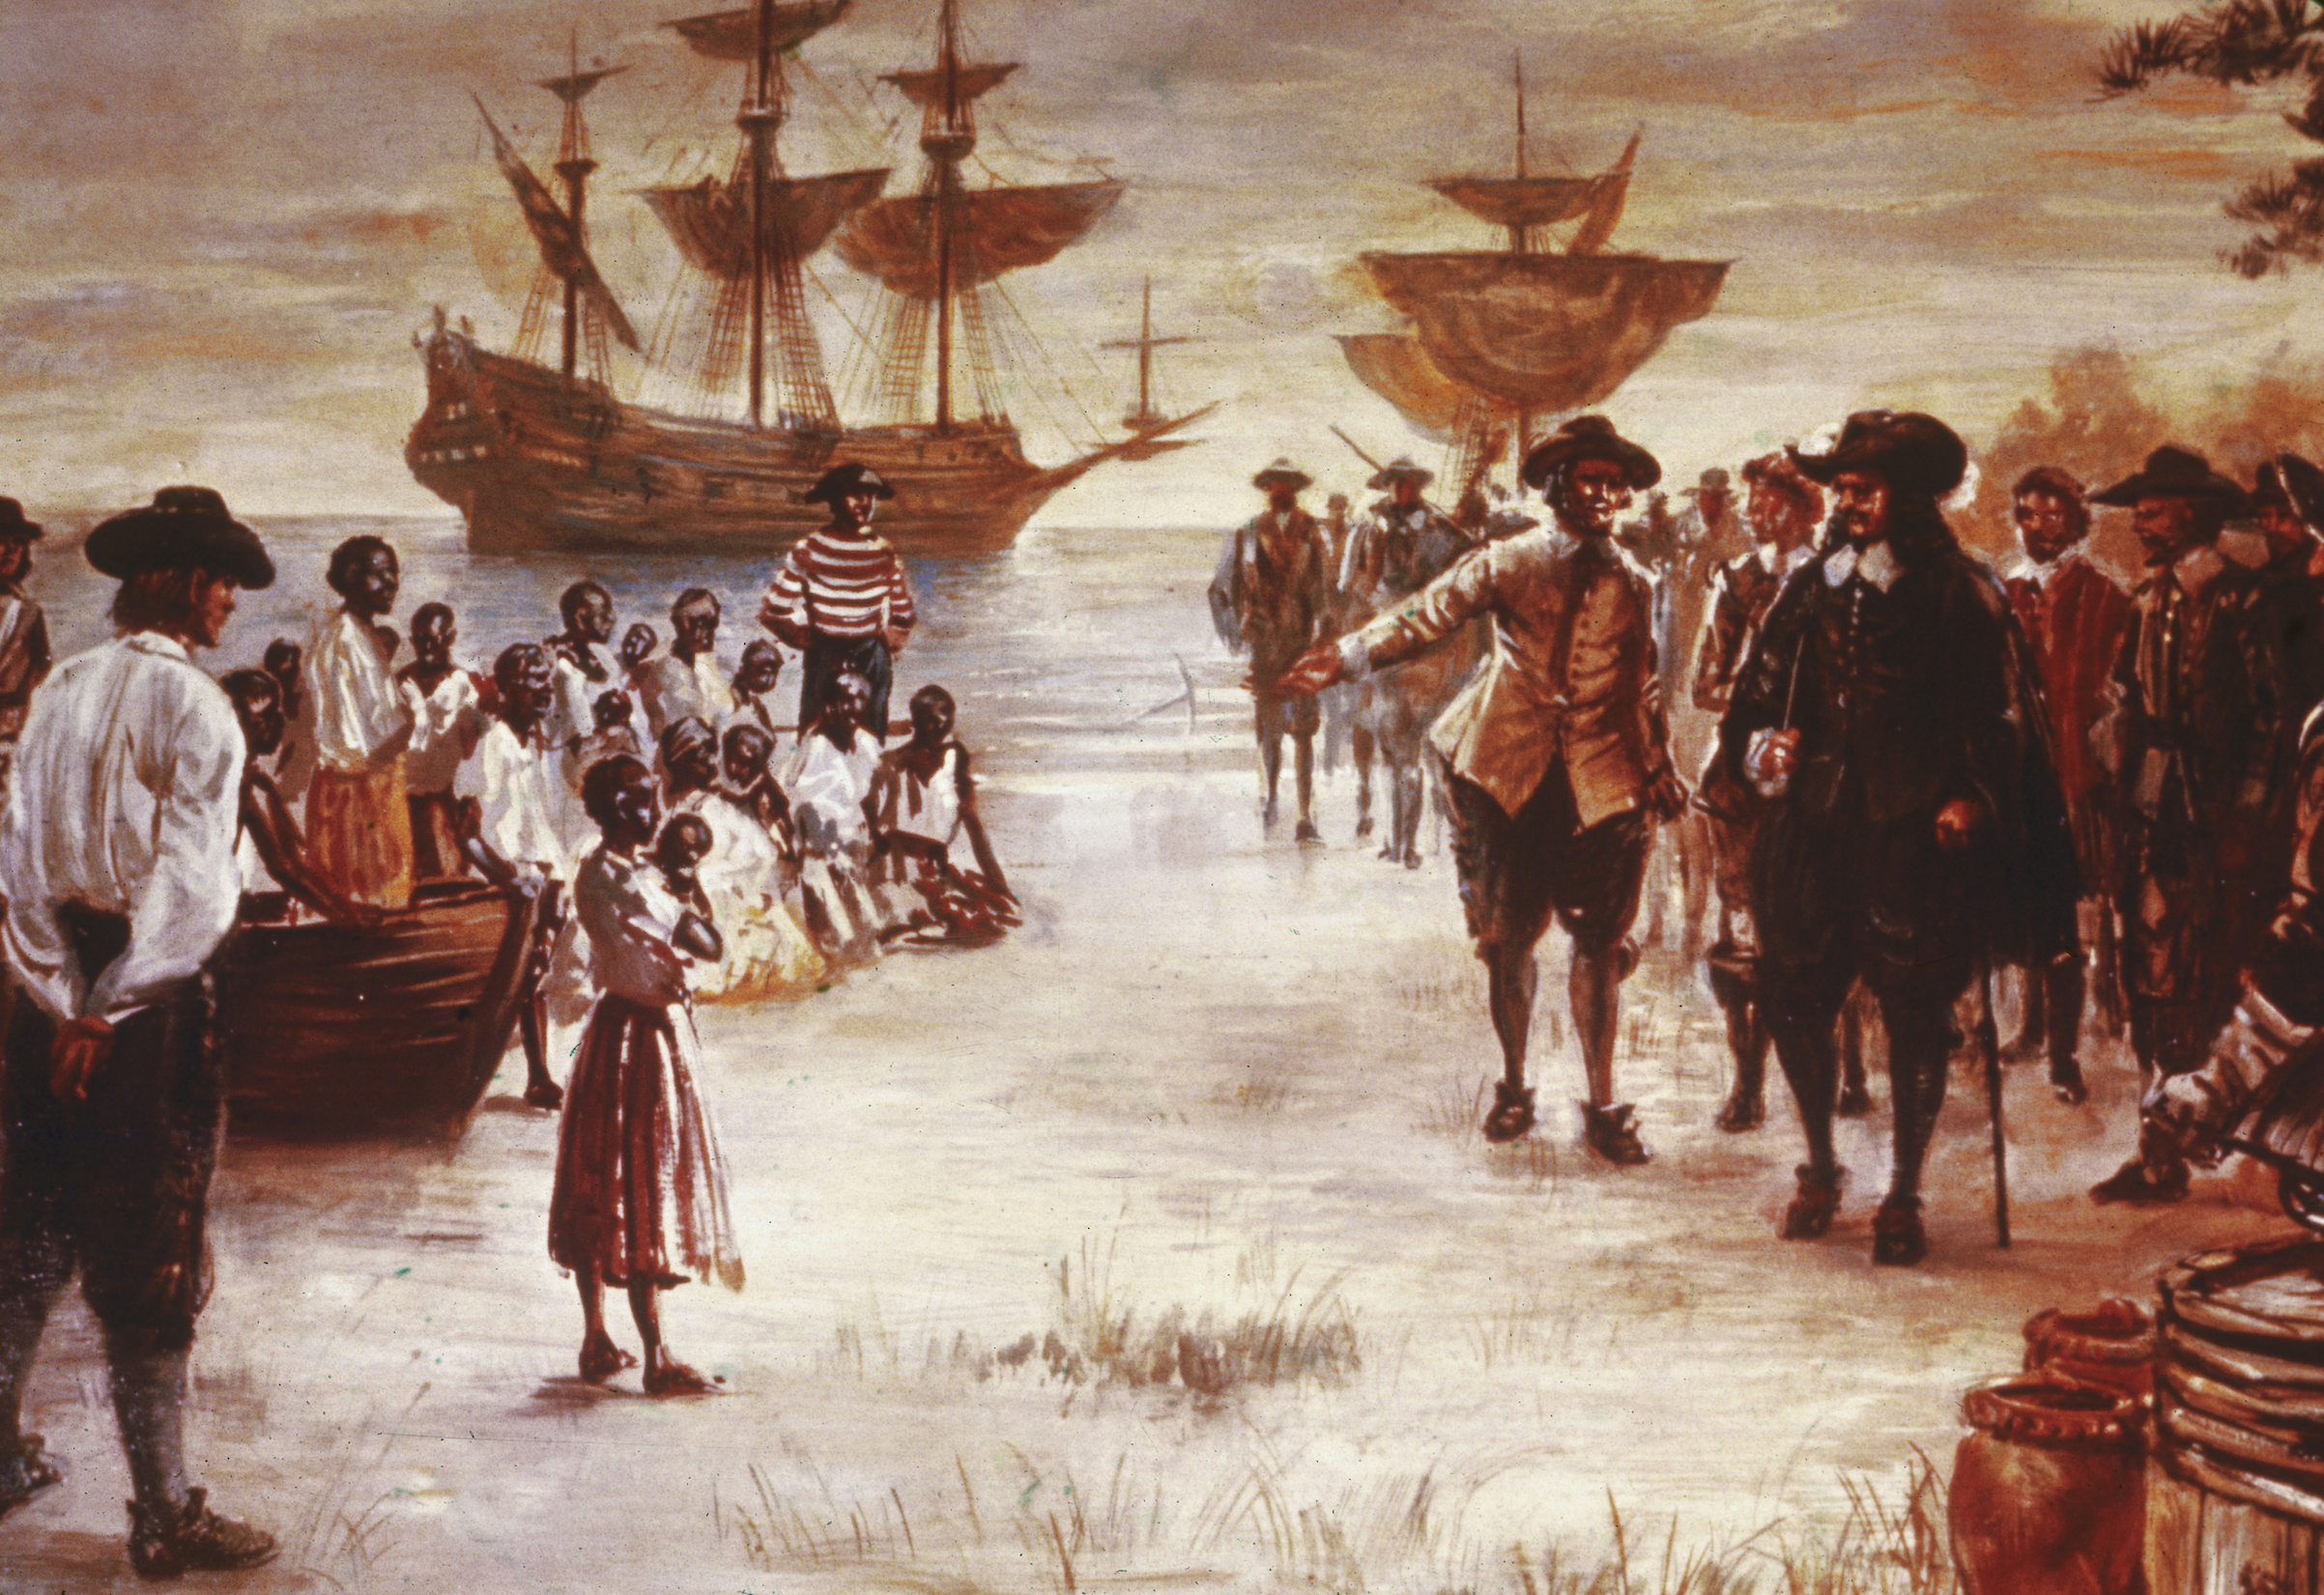 An engraving shows the arrival of a Dutch slave ship with a group of enslaved Africans for sale, Jamestown, Va., 1619.